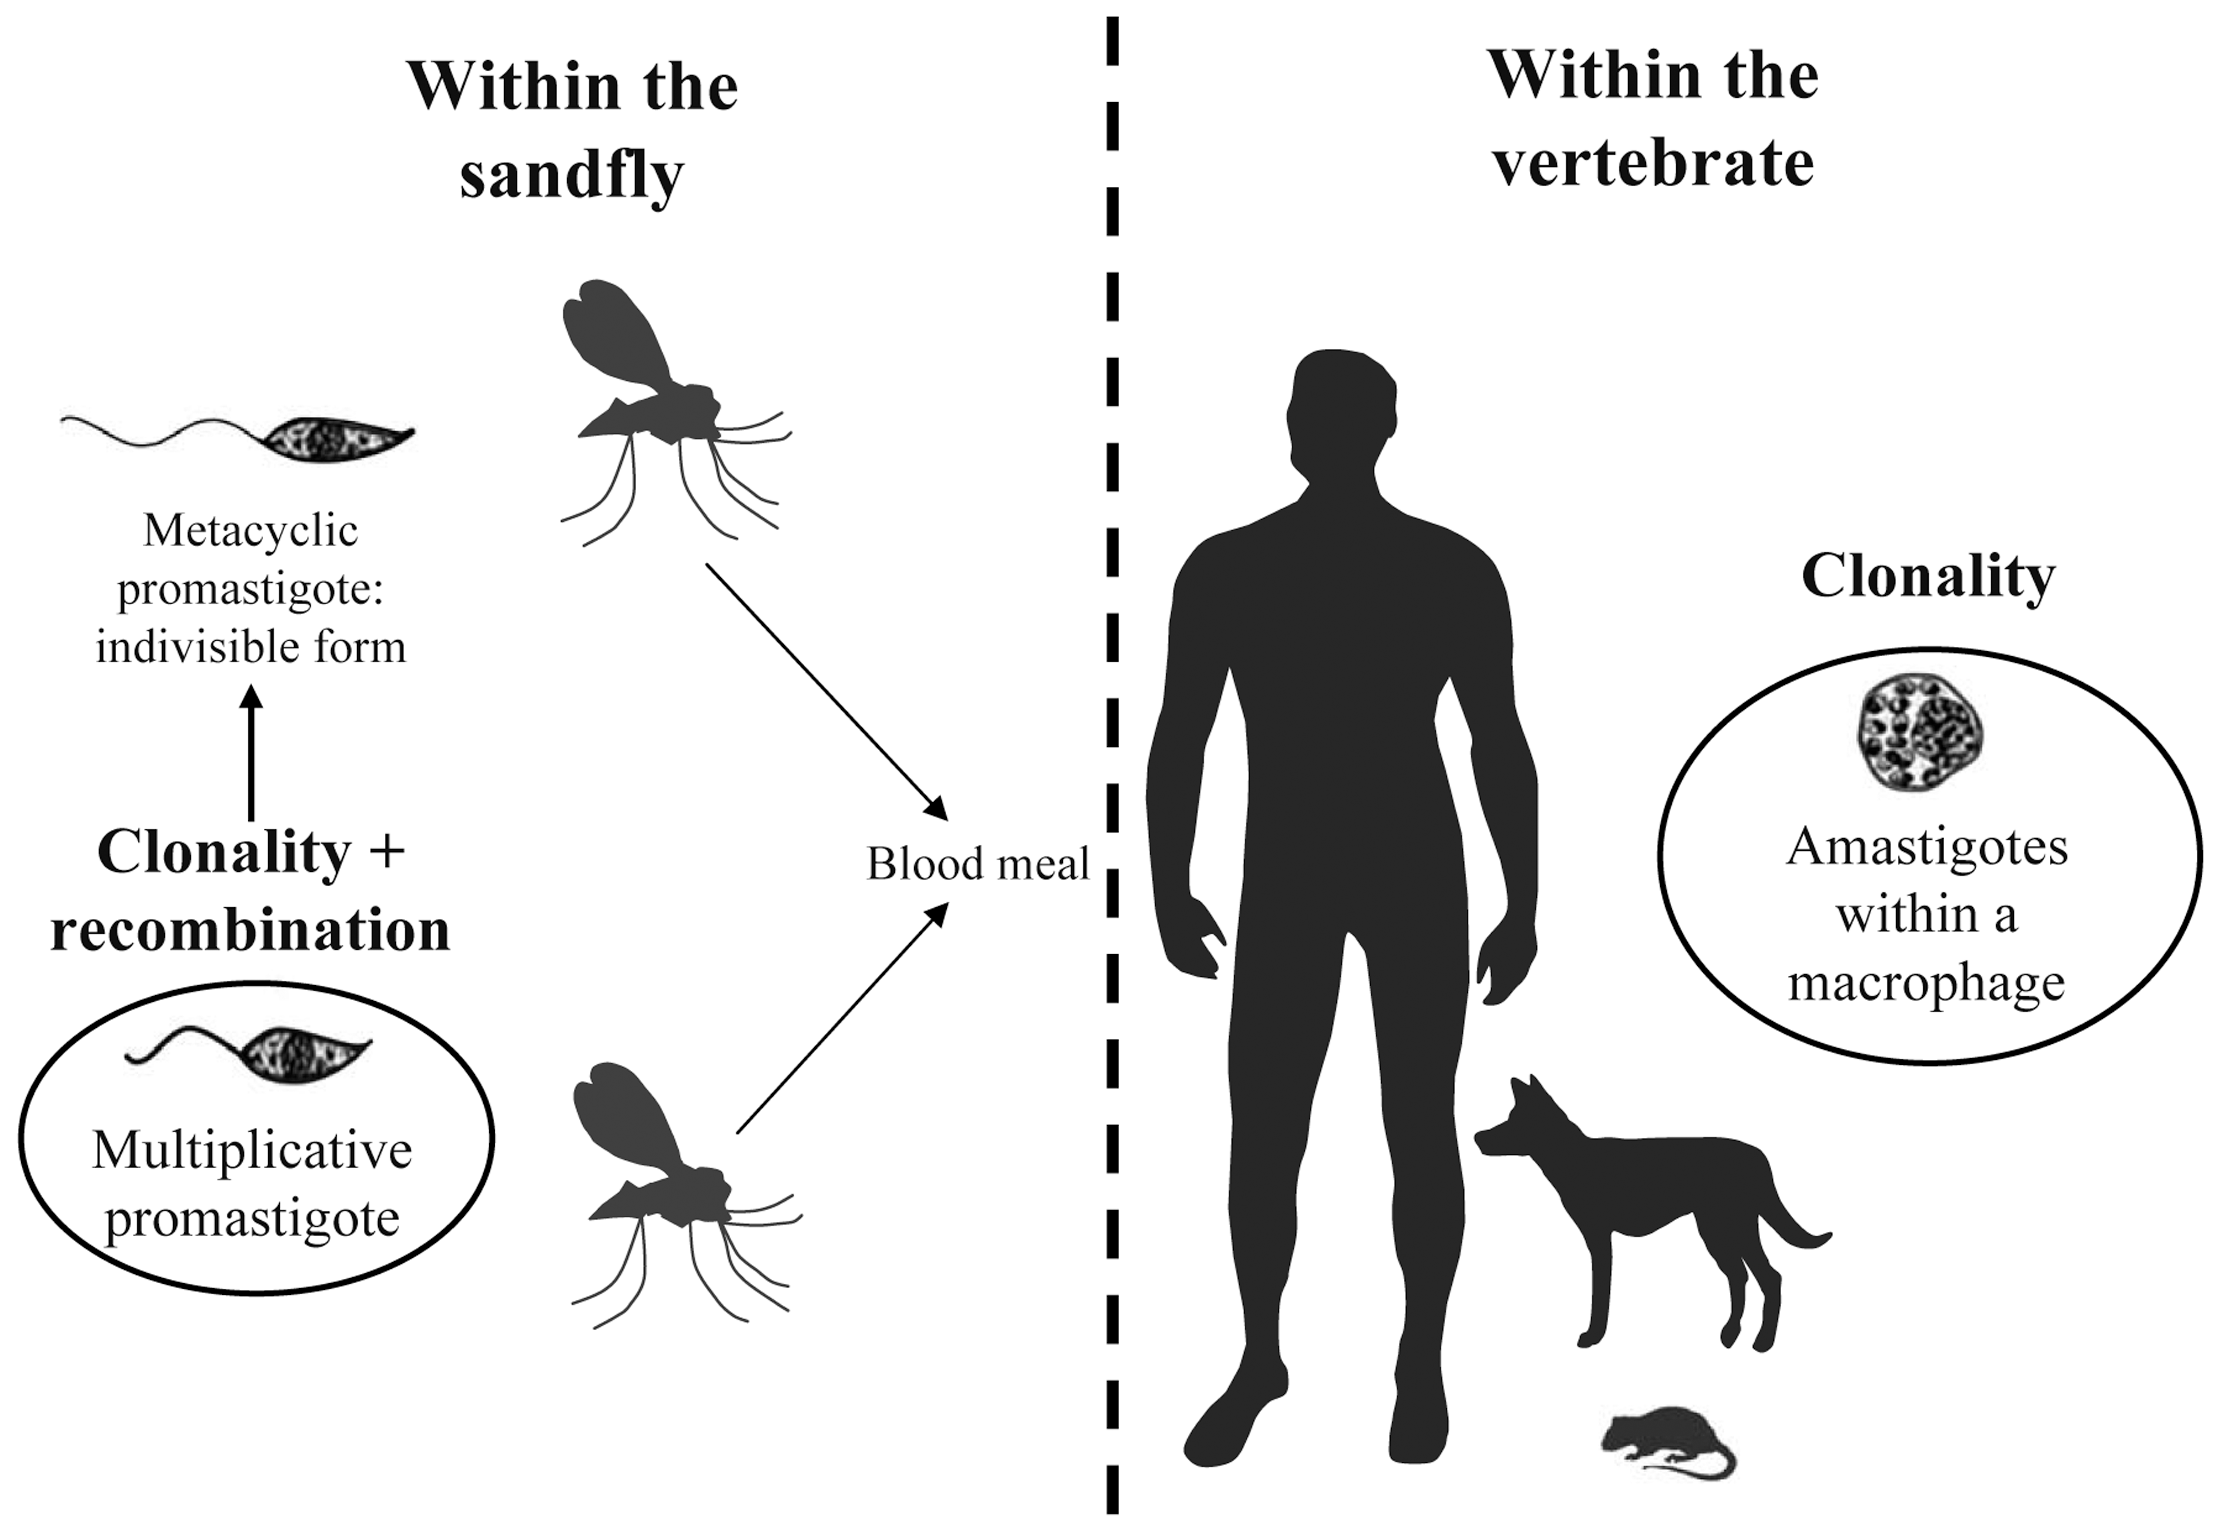 Schematic life cycle of <i>Leishmania</i> parasites.